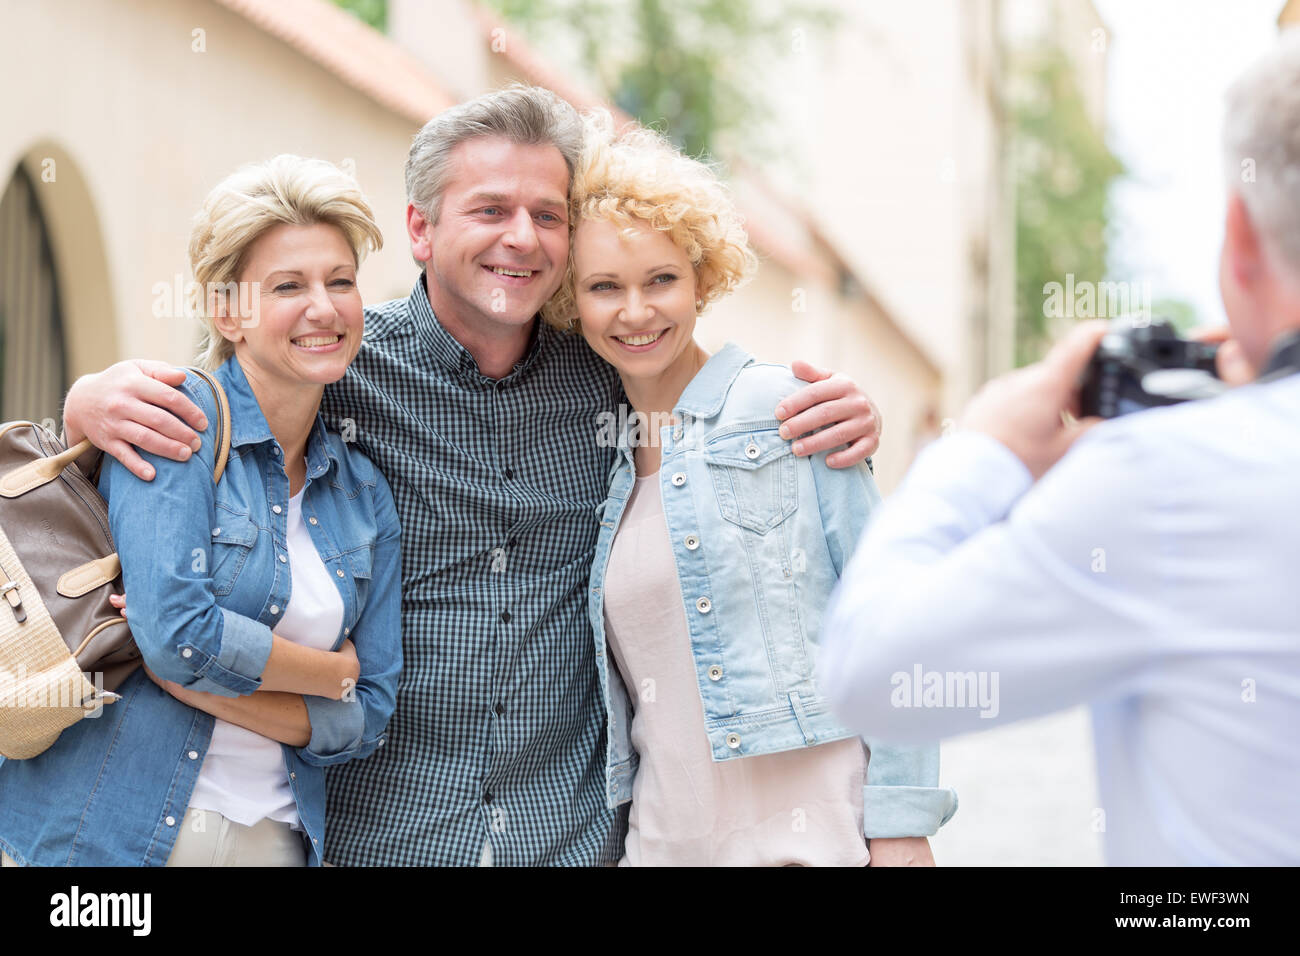 Rear view of man photographing male and female friends in city - Stock Image